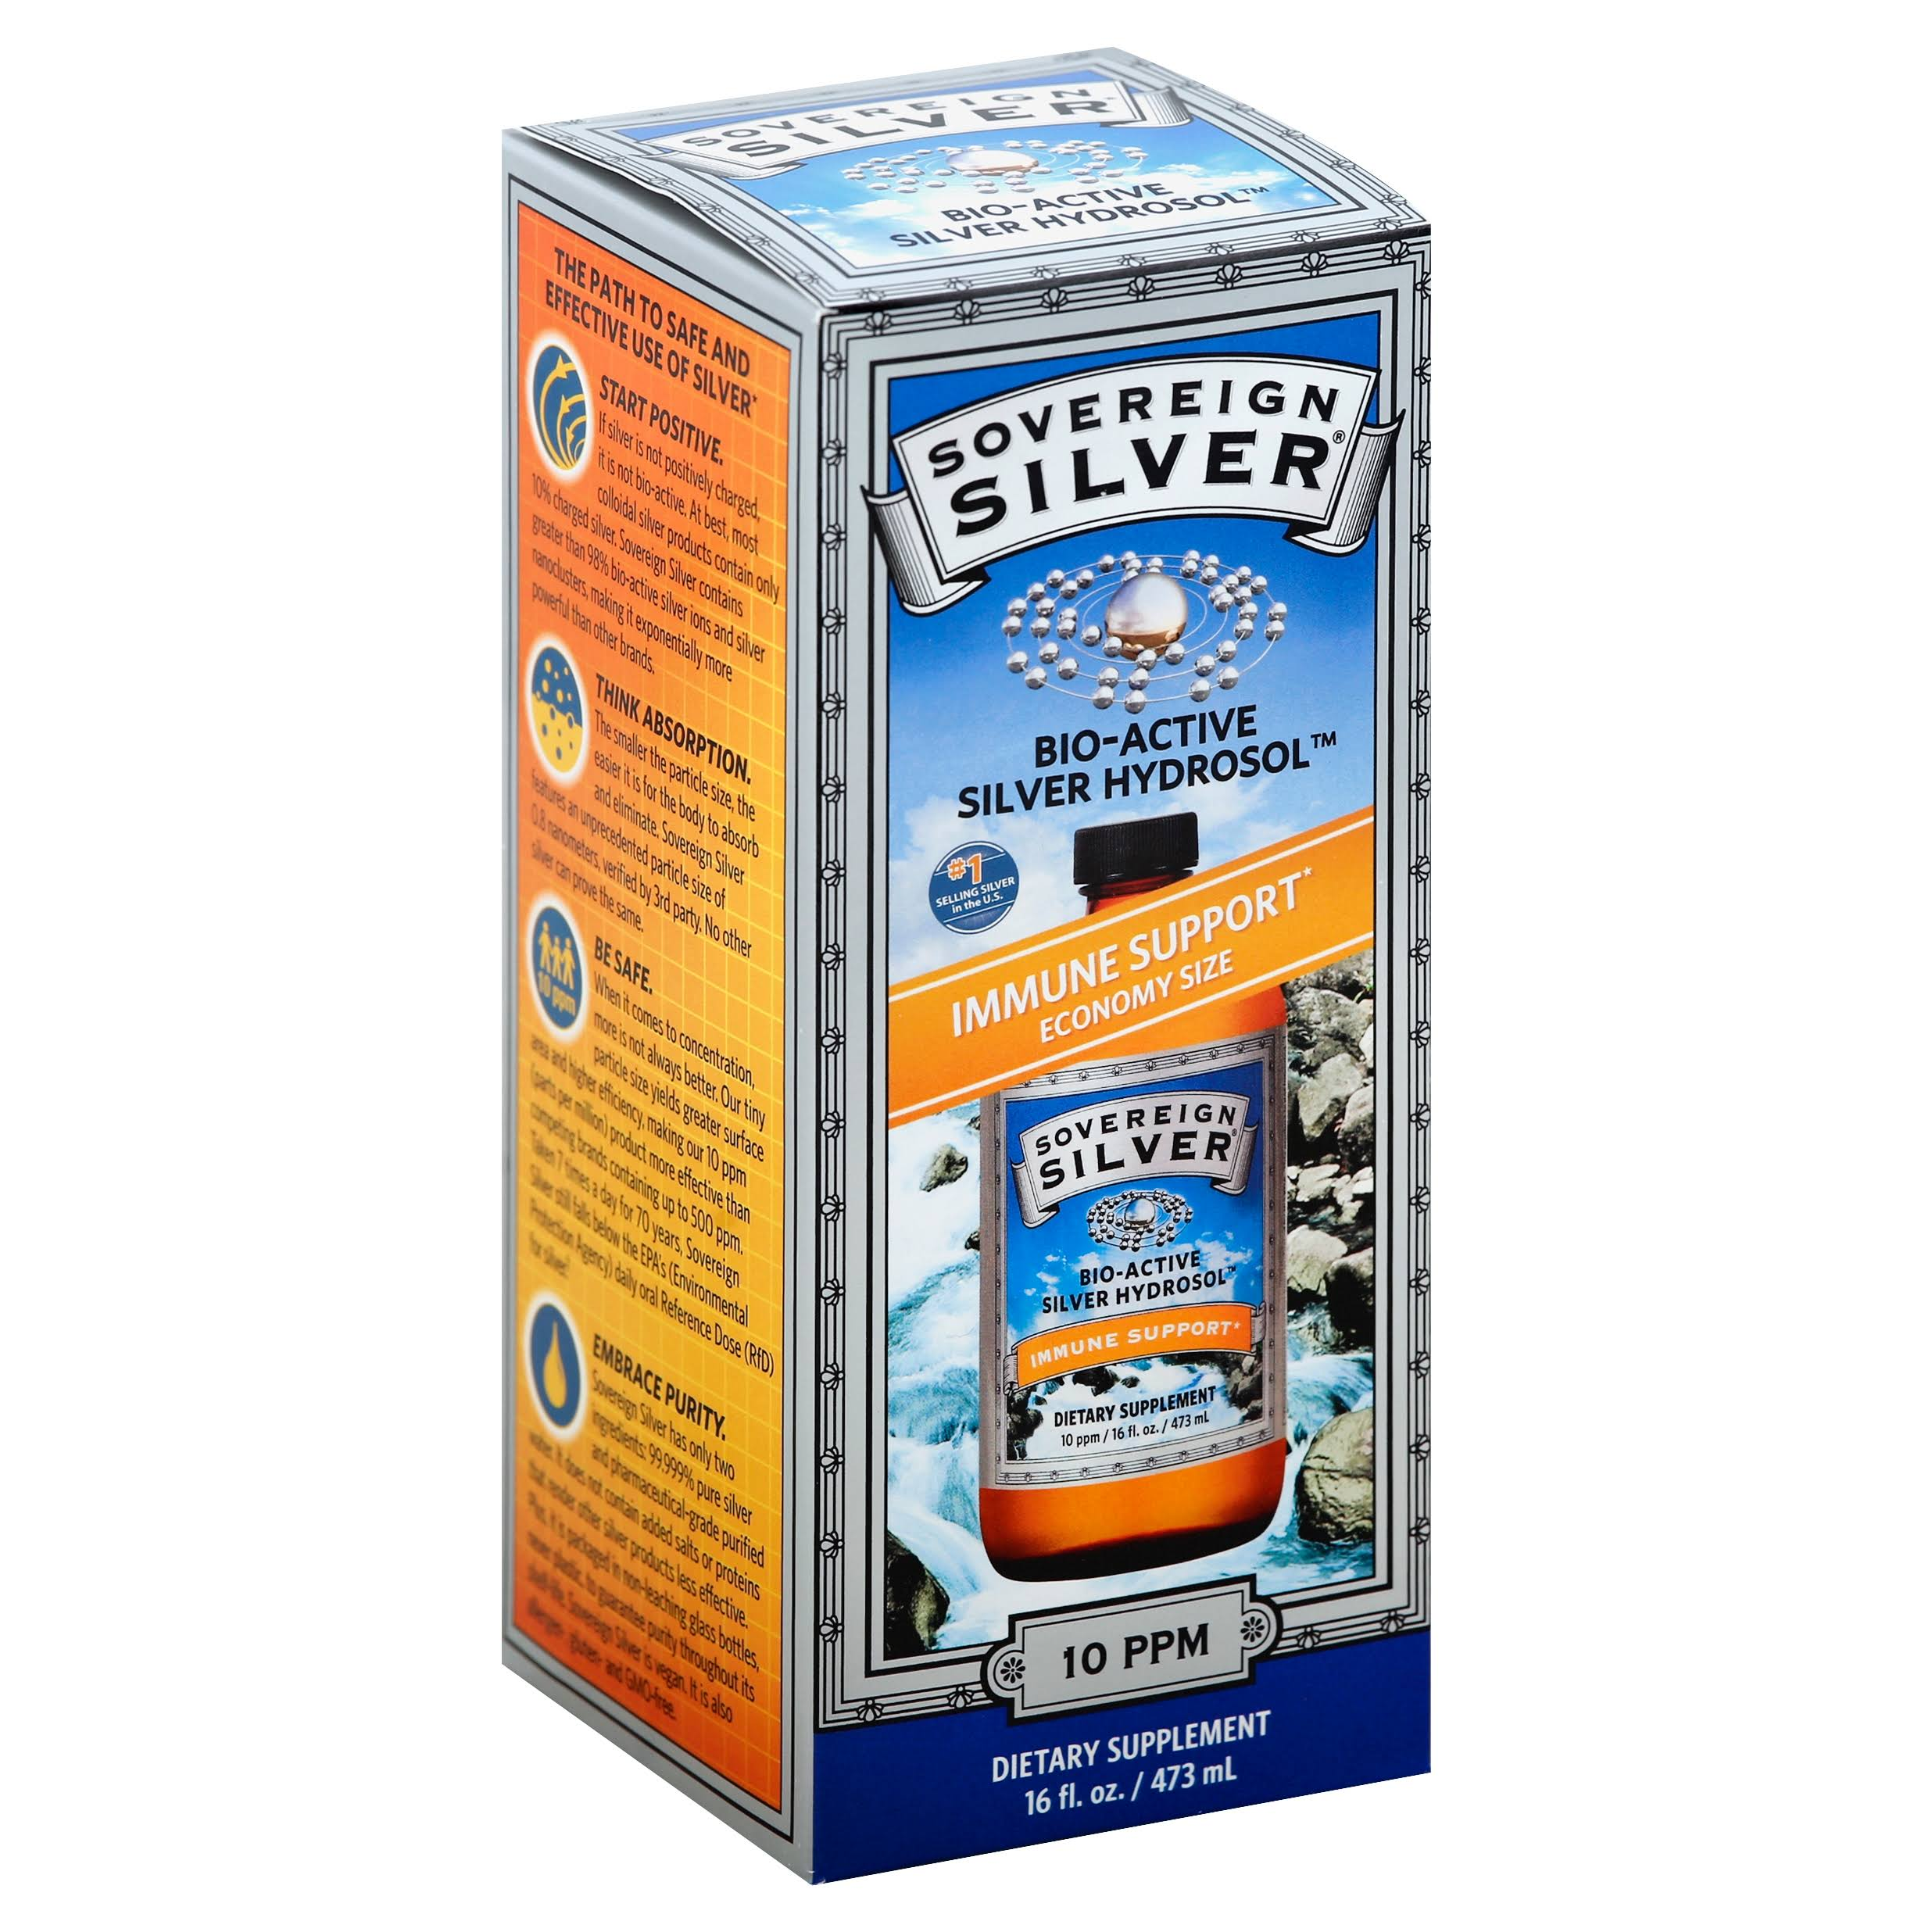 Sovereign Silver Bio-Active Silver Hydrosol, 10 ppm - 16 fl oz bottle